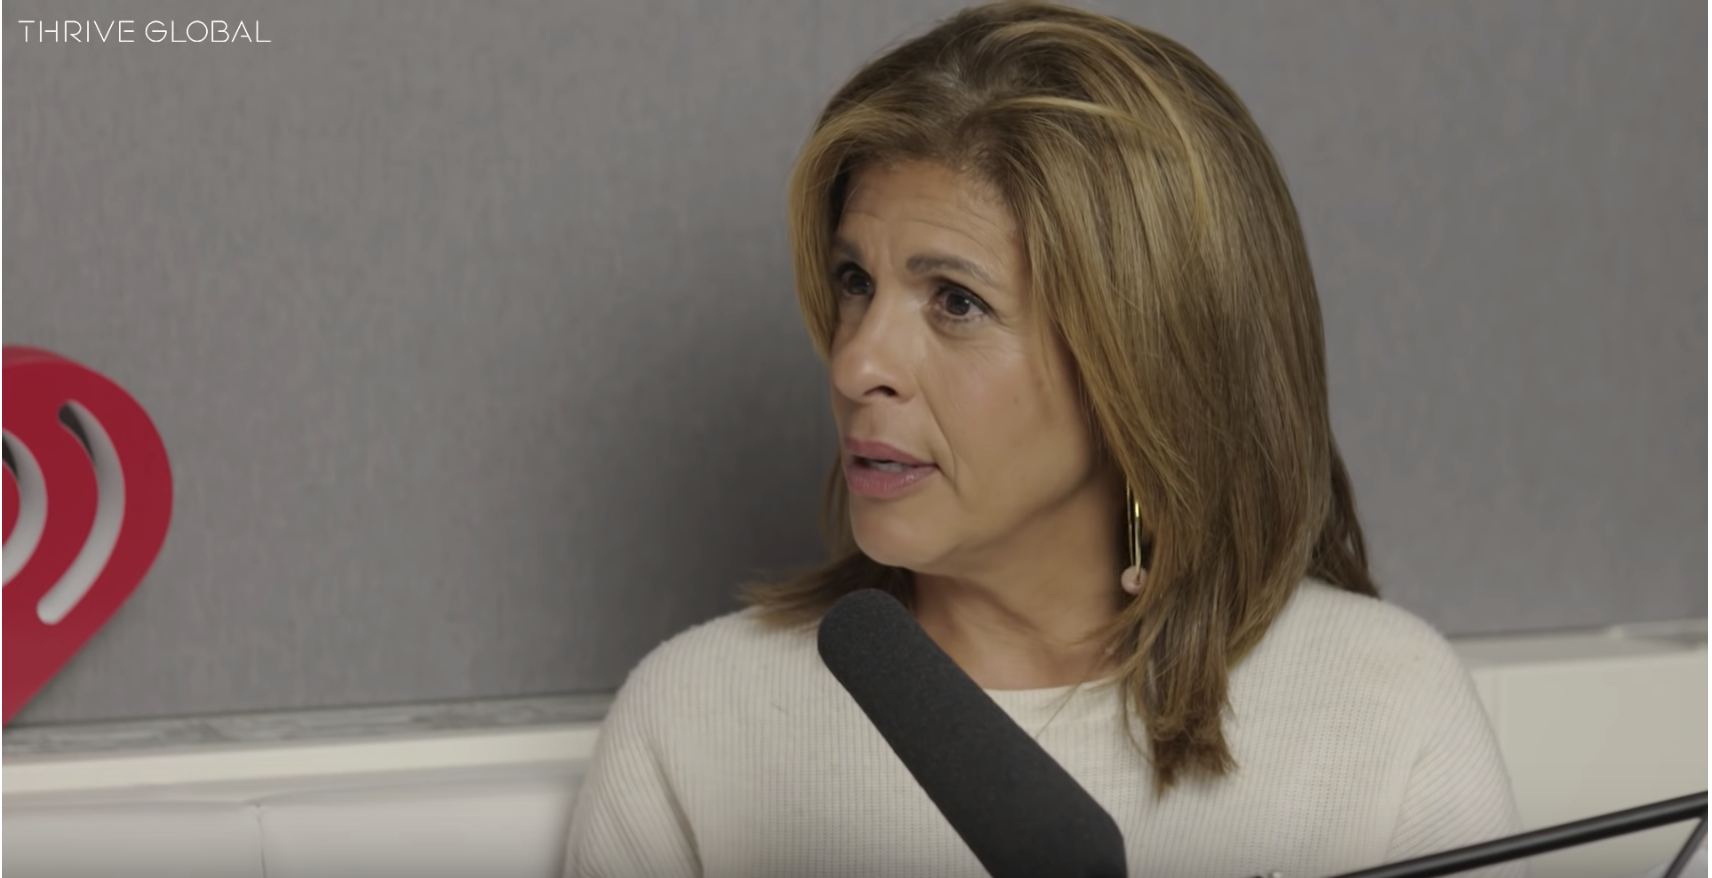 Hoda Kotb Says Her Best Life — and Most Important Relationship — Came When She Least Expected It